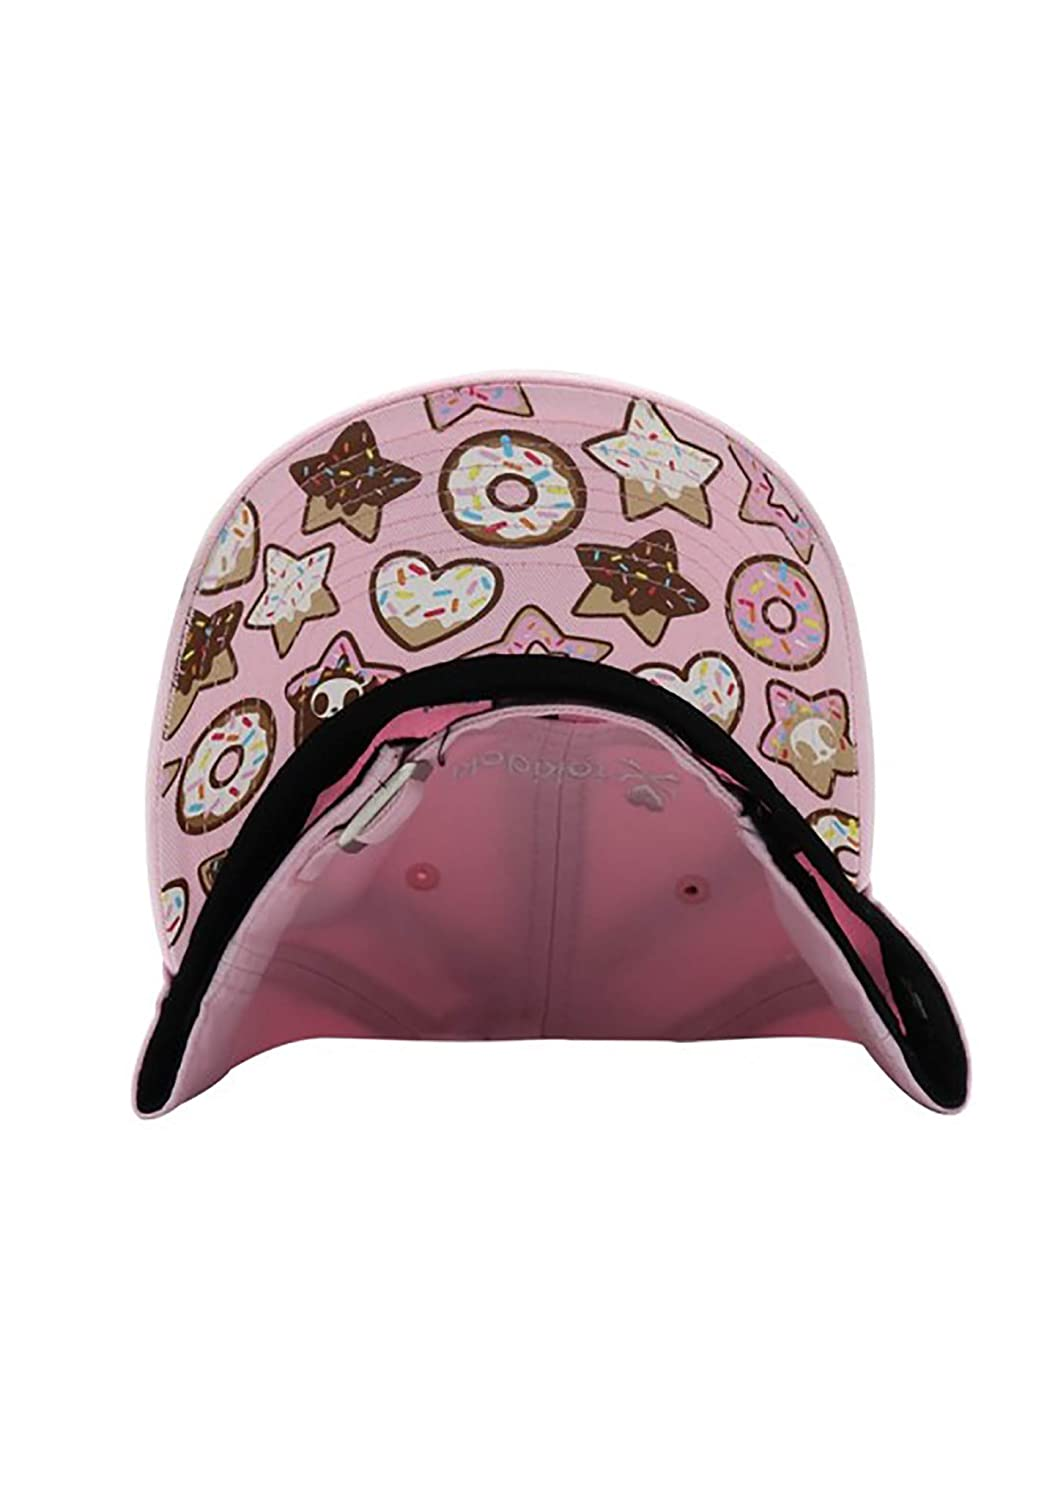 5abca250acb Amazon.com  Tokidoki Biscotti Dad Hat in Pink  Clothing